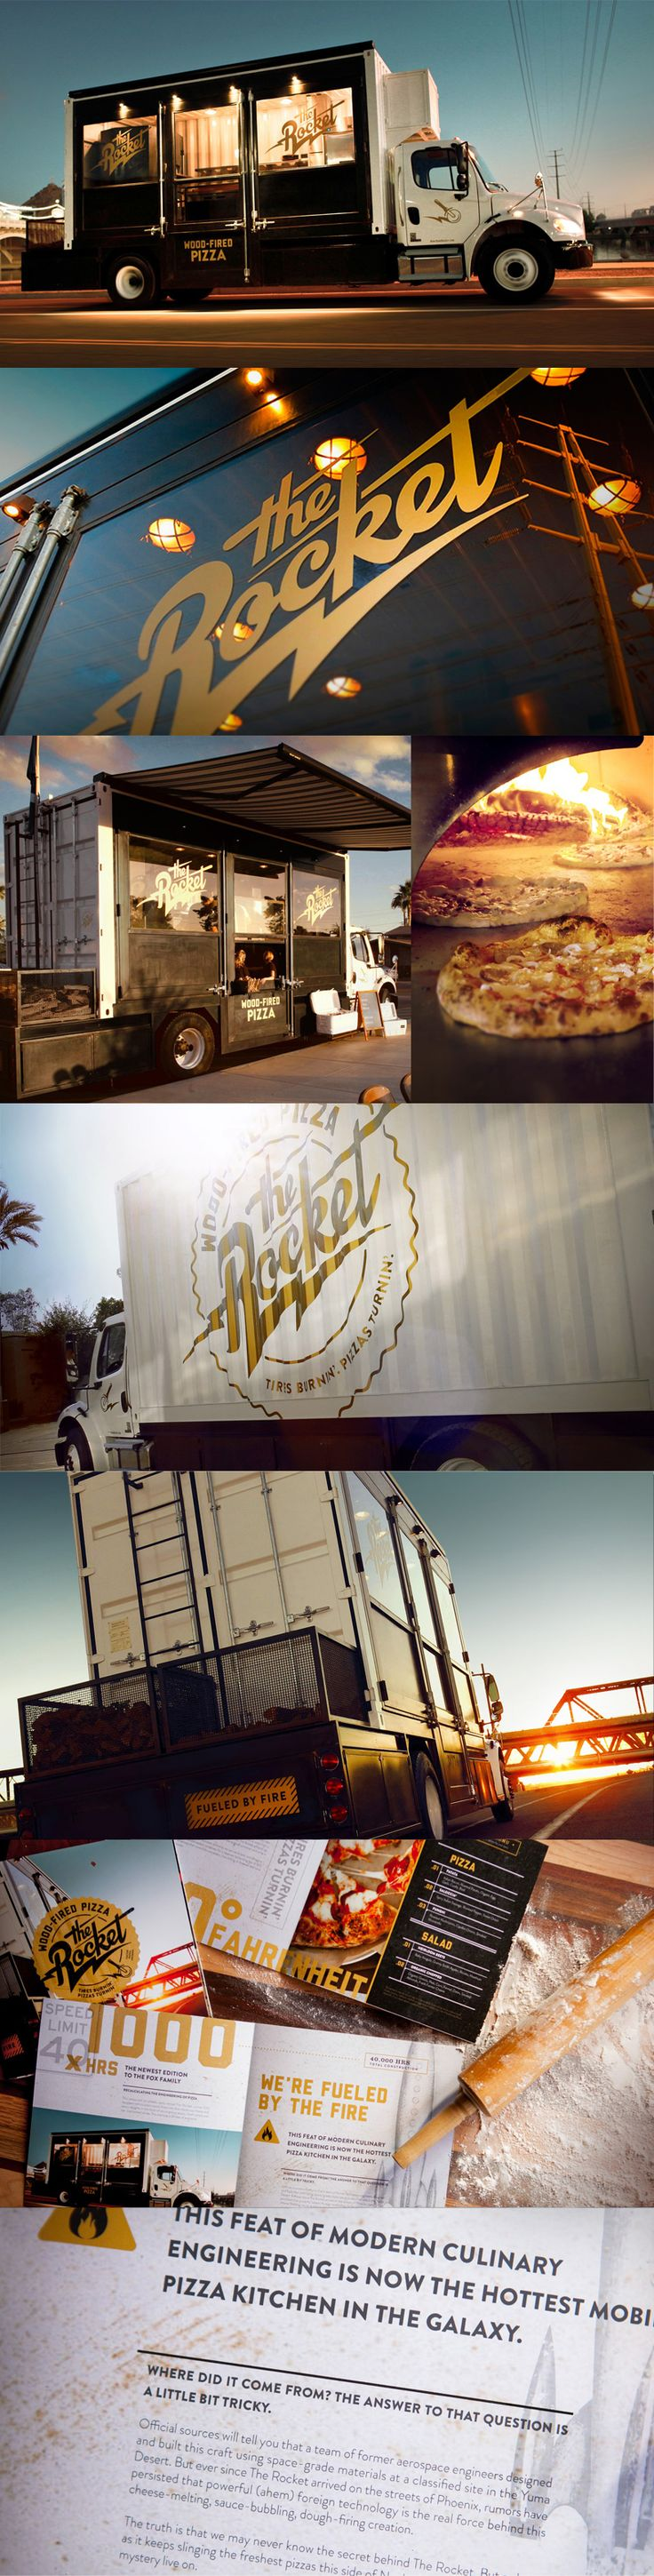 The rocket pizza food truck grits grids - The Rocket Wood Fired Pizza Truck